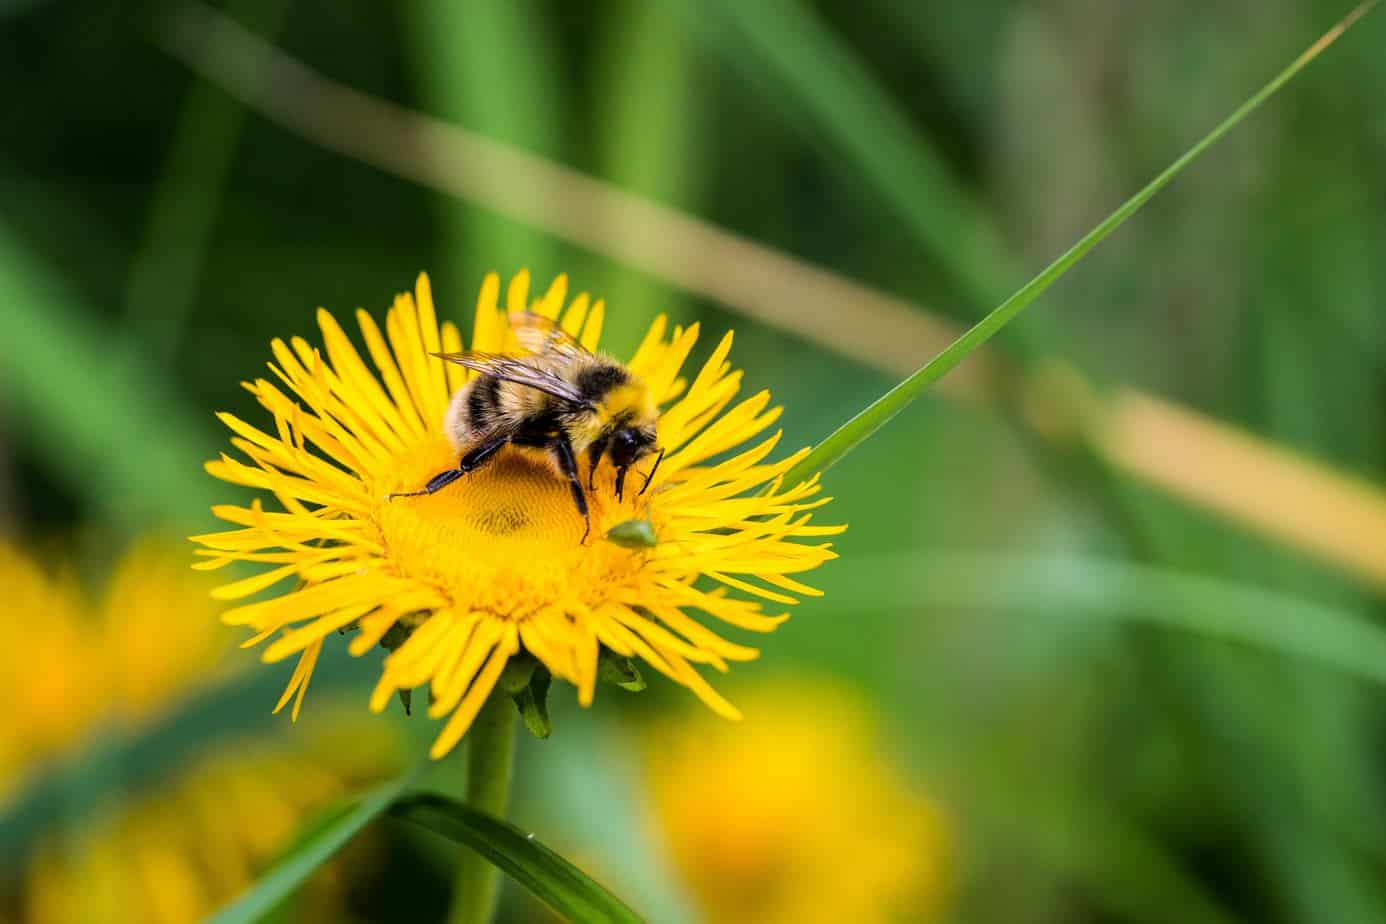 Saving the Bees - What not to do in the garden to help the bees